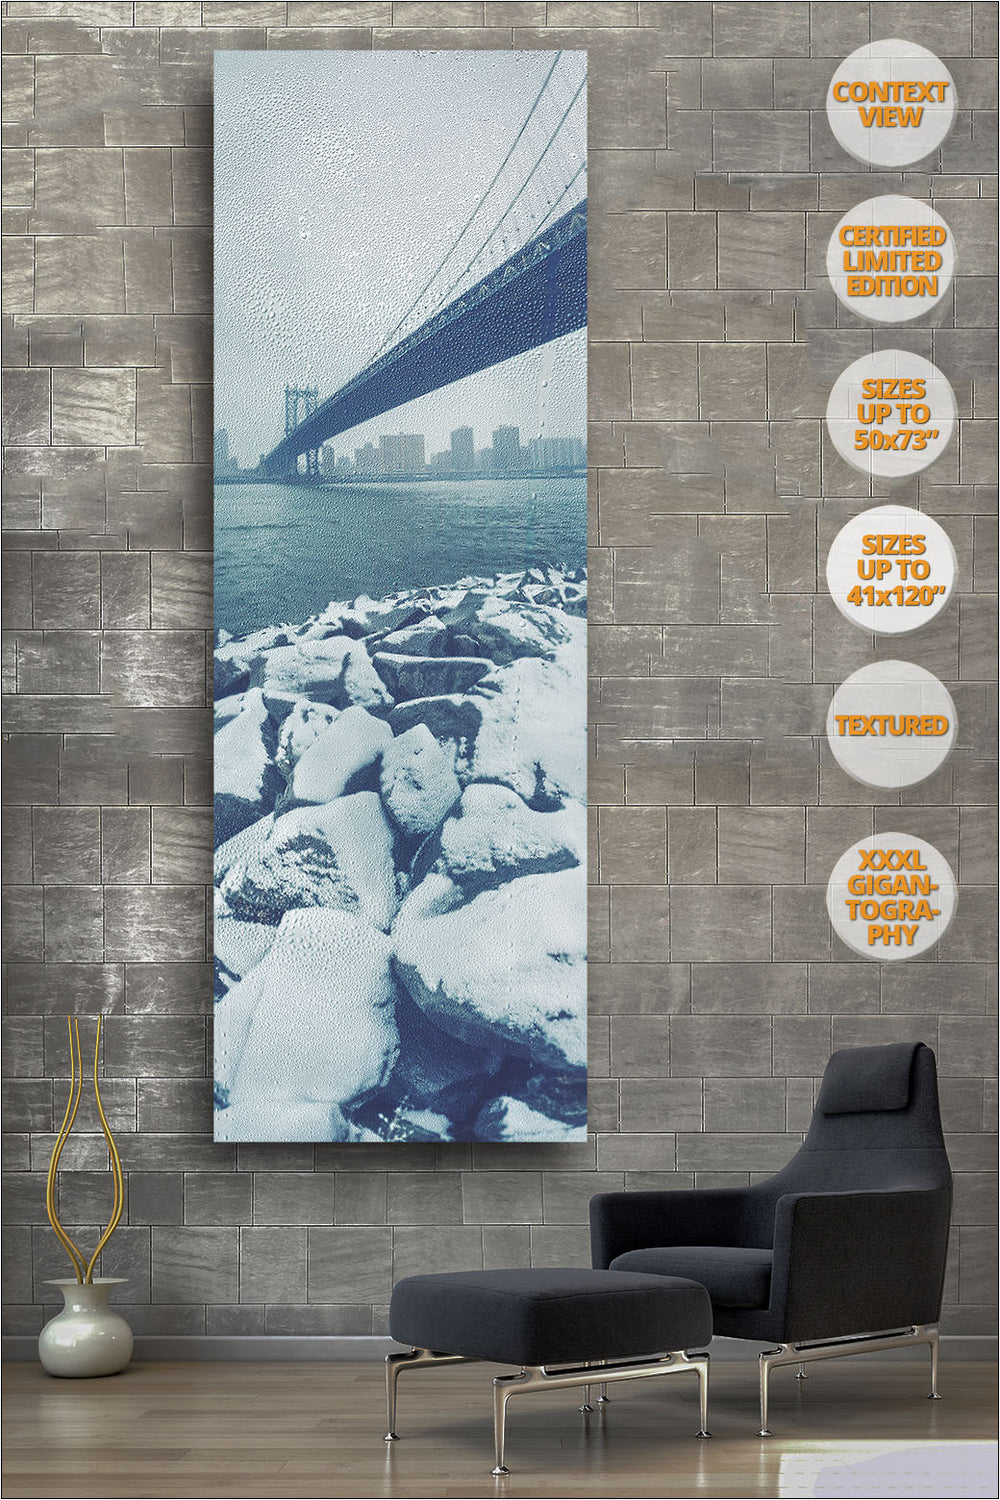 Manhattan Bridge in Blizzard, Winter, New York. | View of the Print hanged in Reading Room.